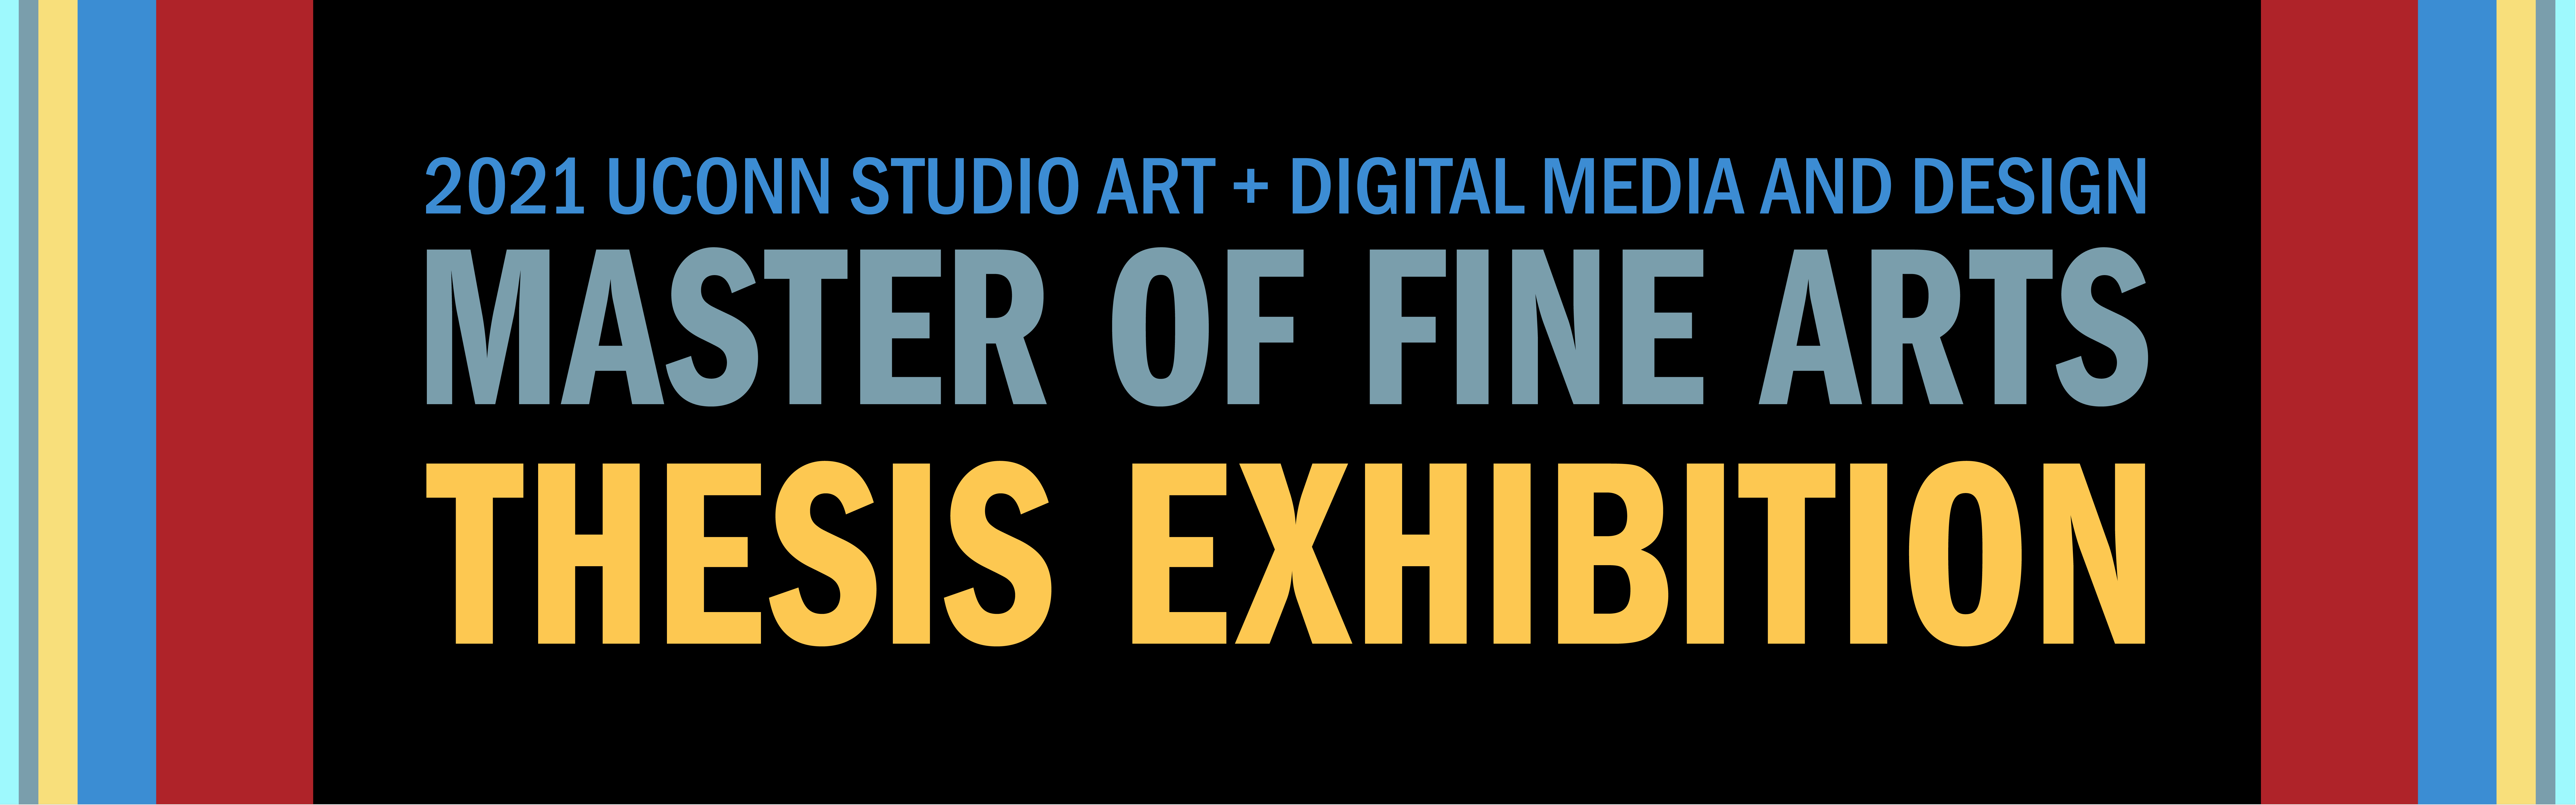 Banner image for the 2021 MFA thesis exhibition